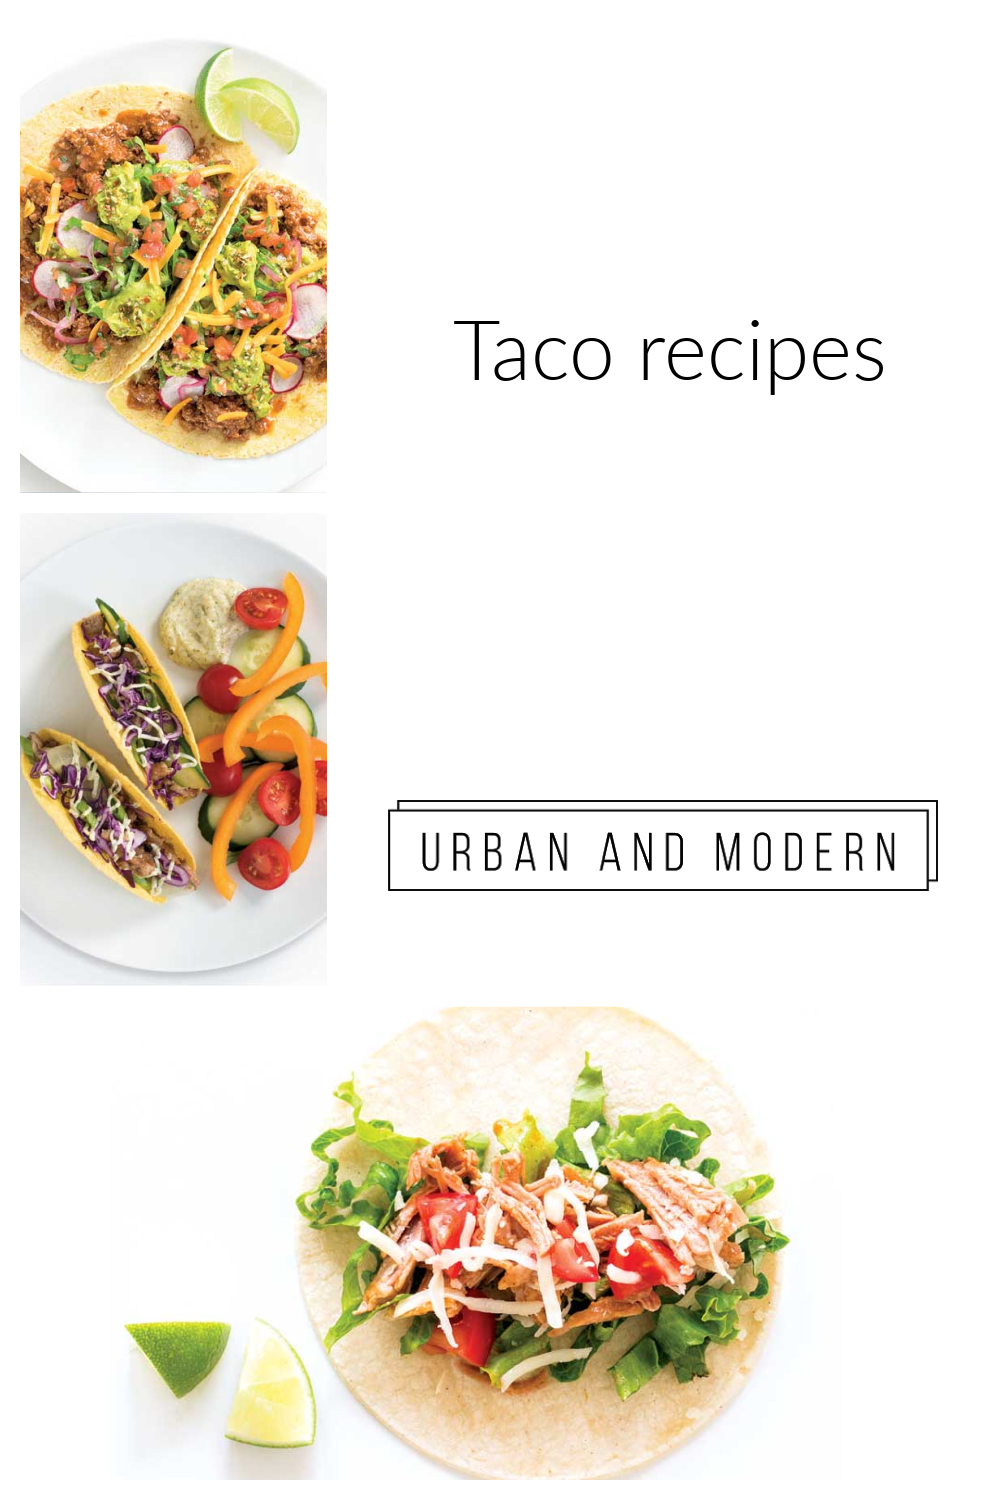 Epicure Taco recipes